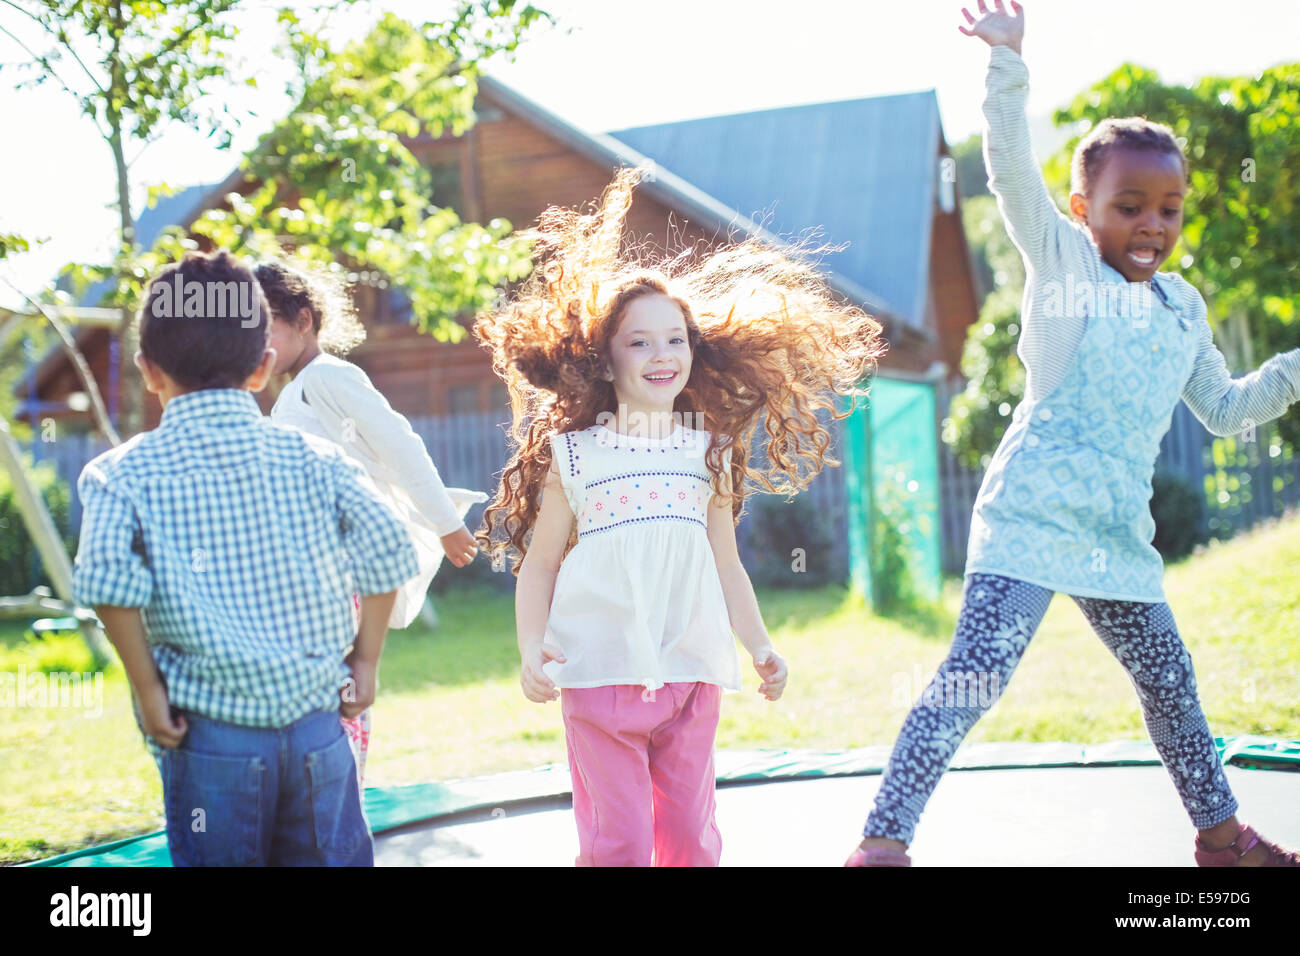 Children jumping on trampoline outdoors - Stock Image